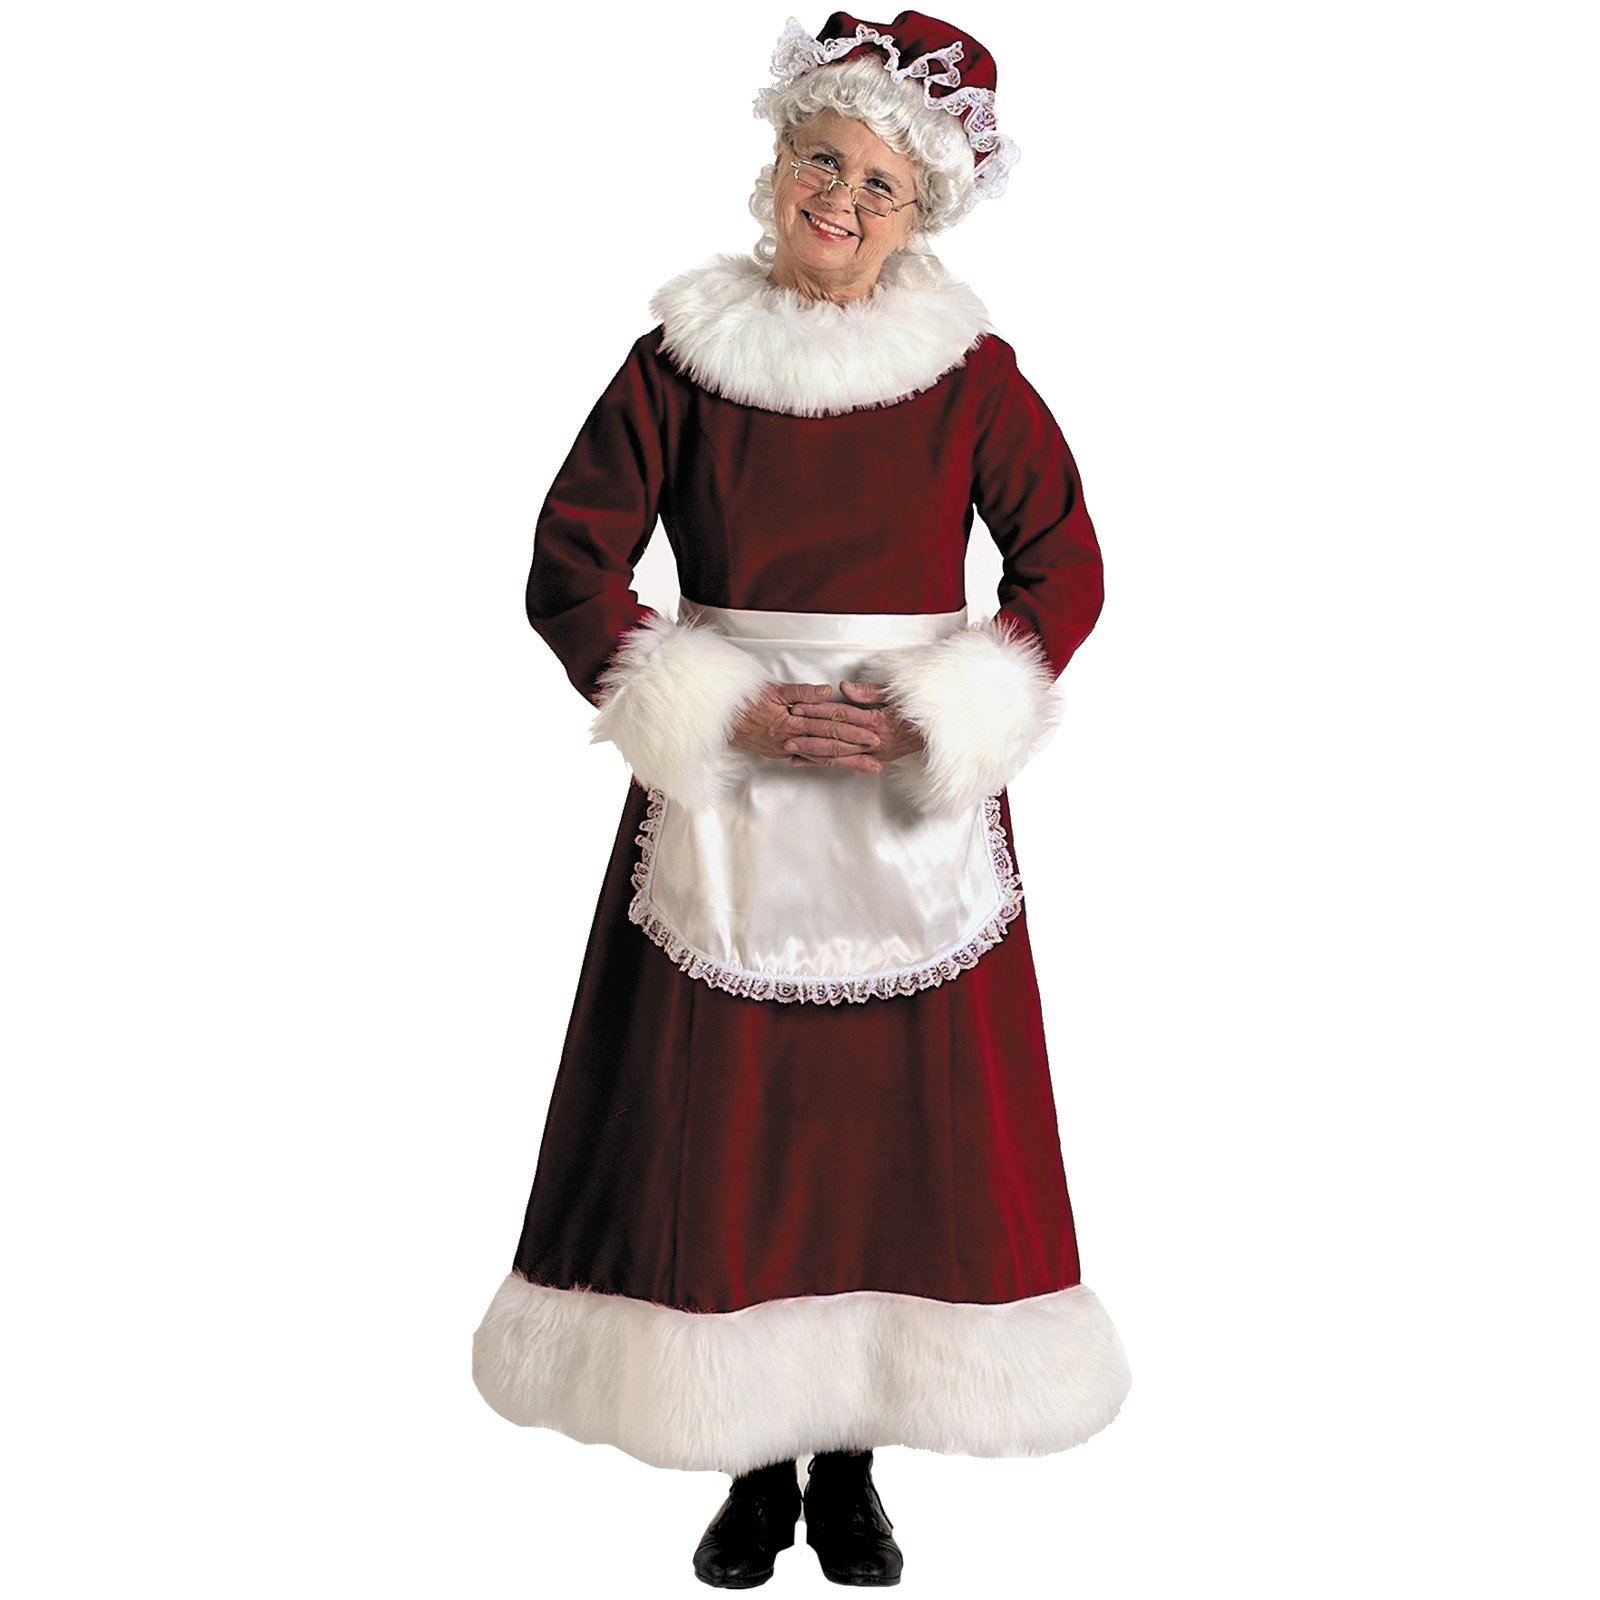 What is mrs claus first name